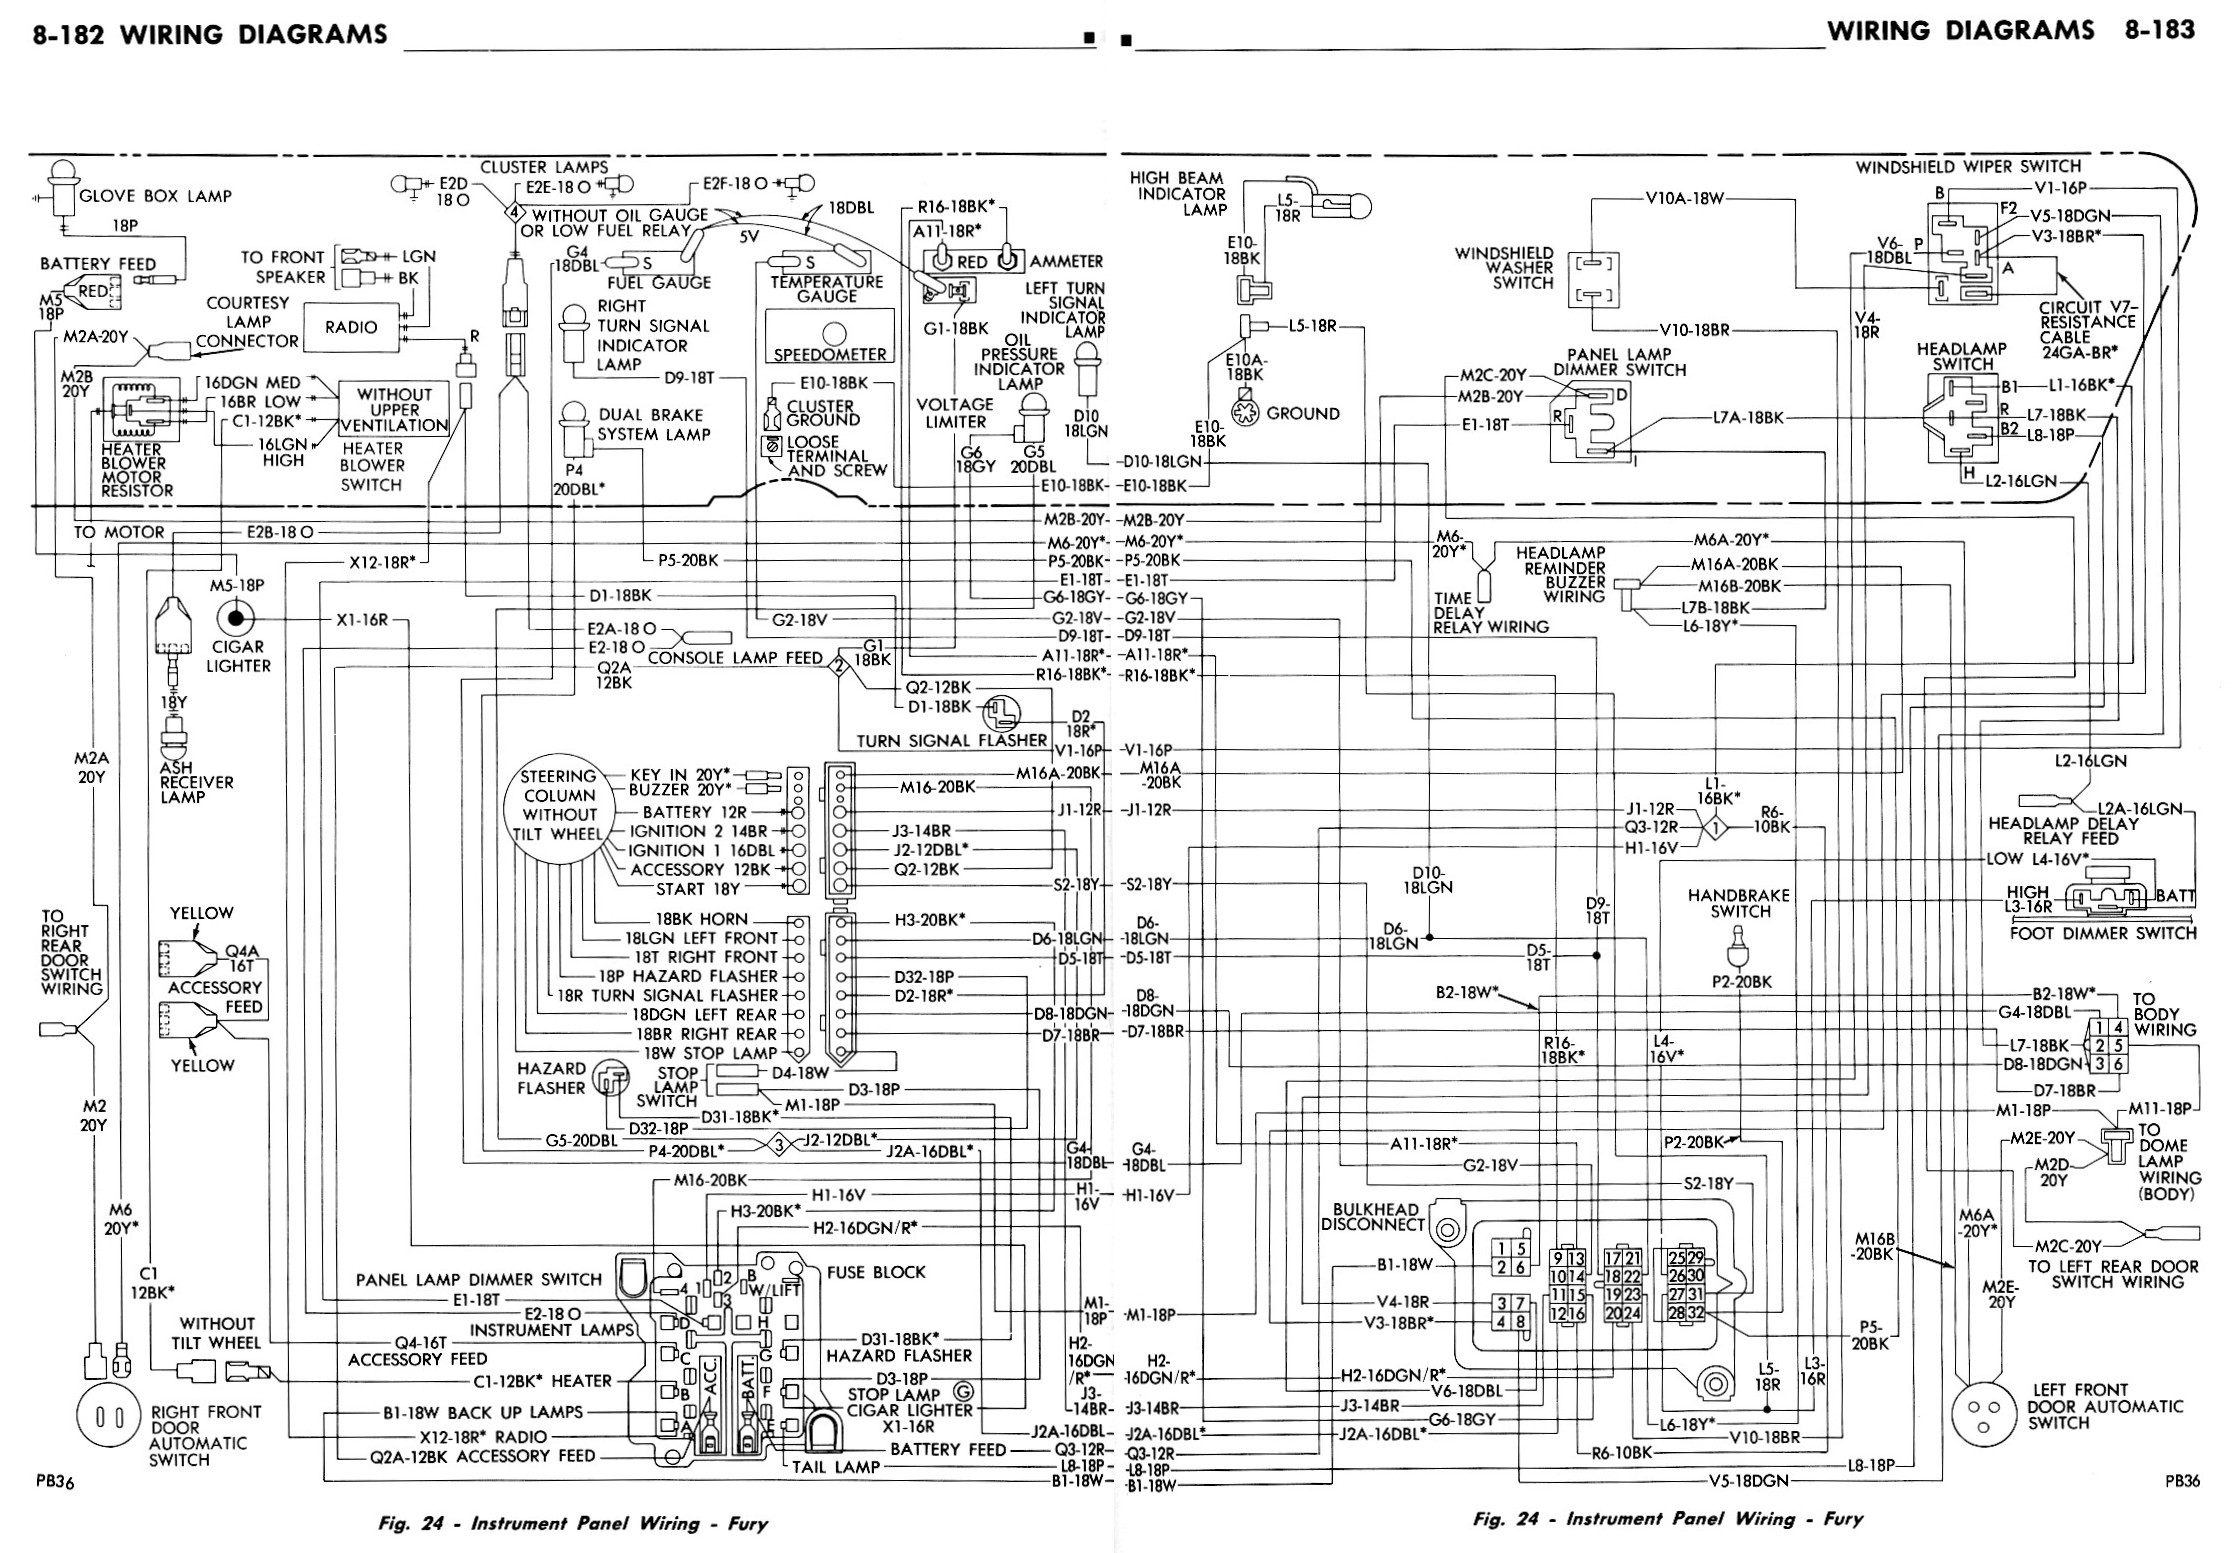 1970 plymouth barracuda ignition wiring diagram plymouth